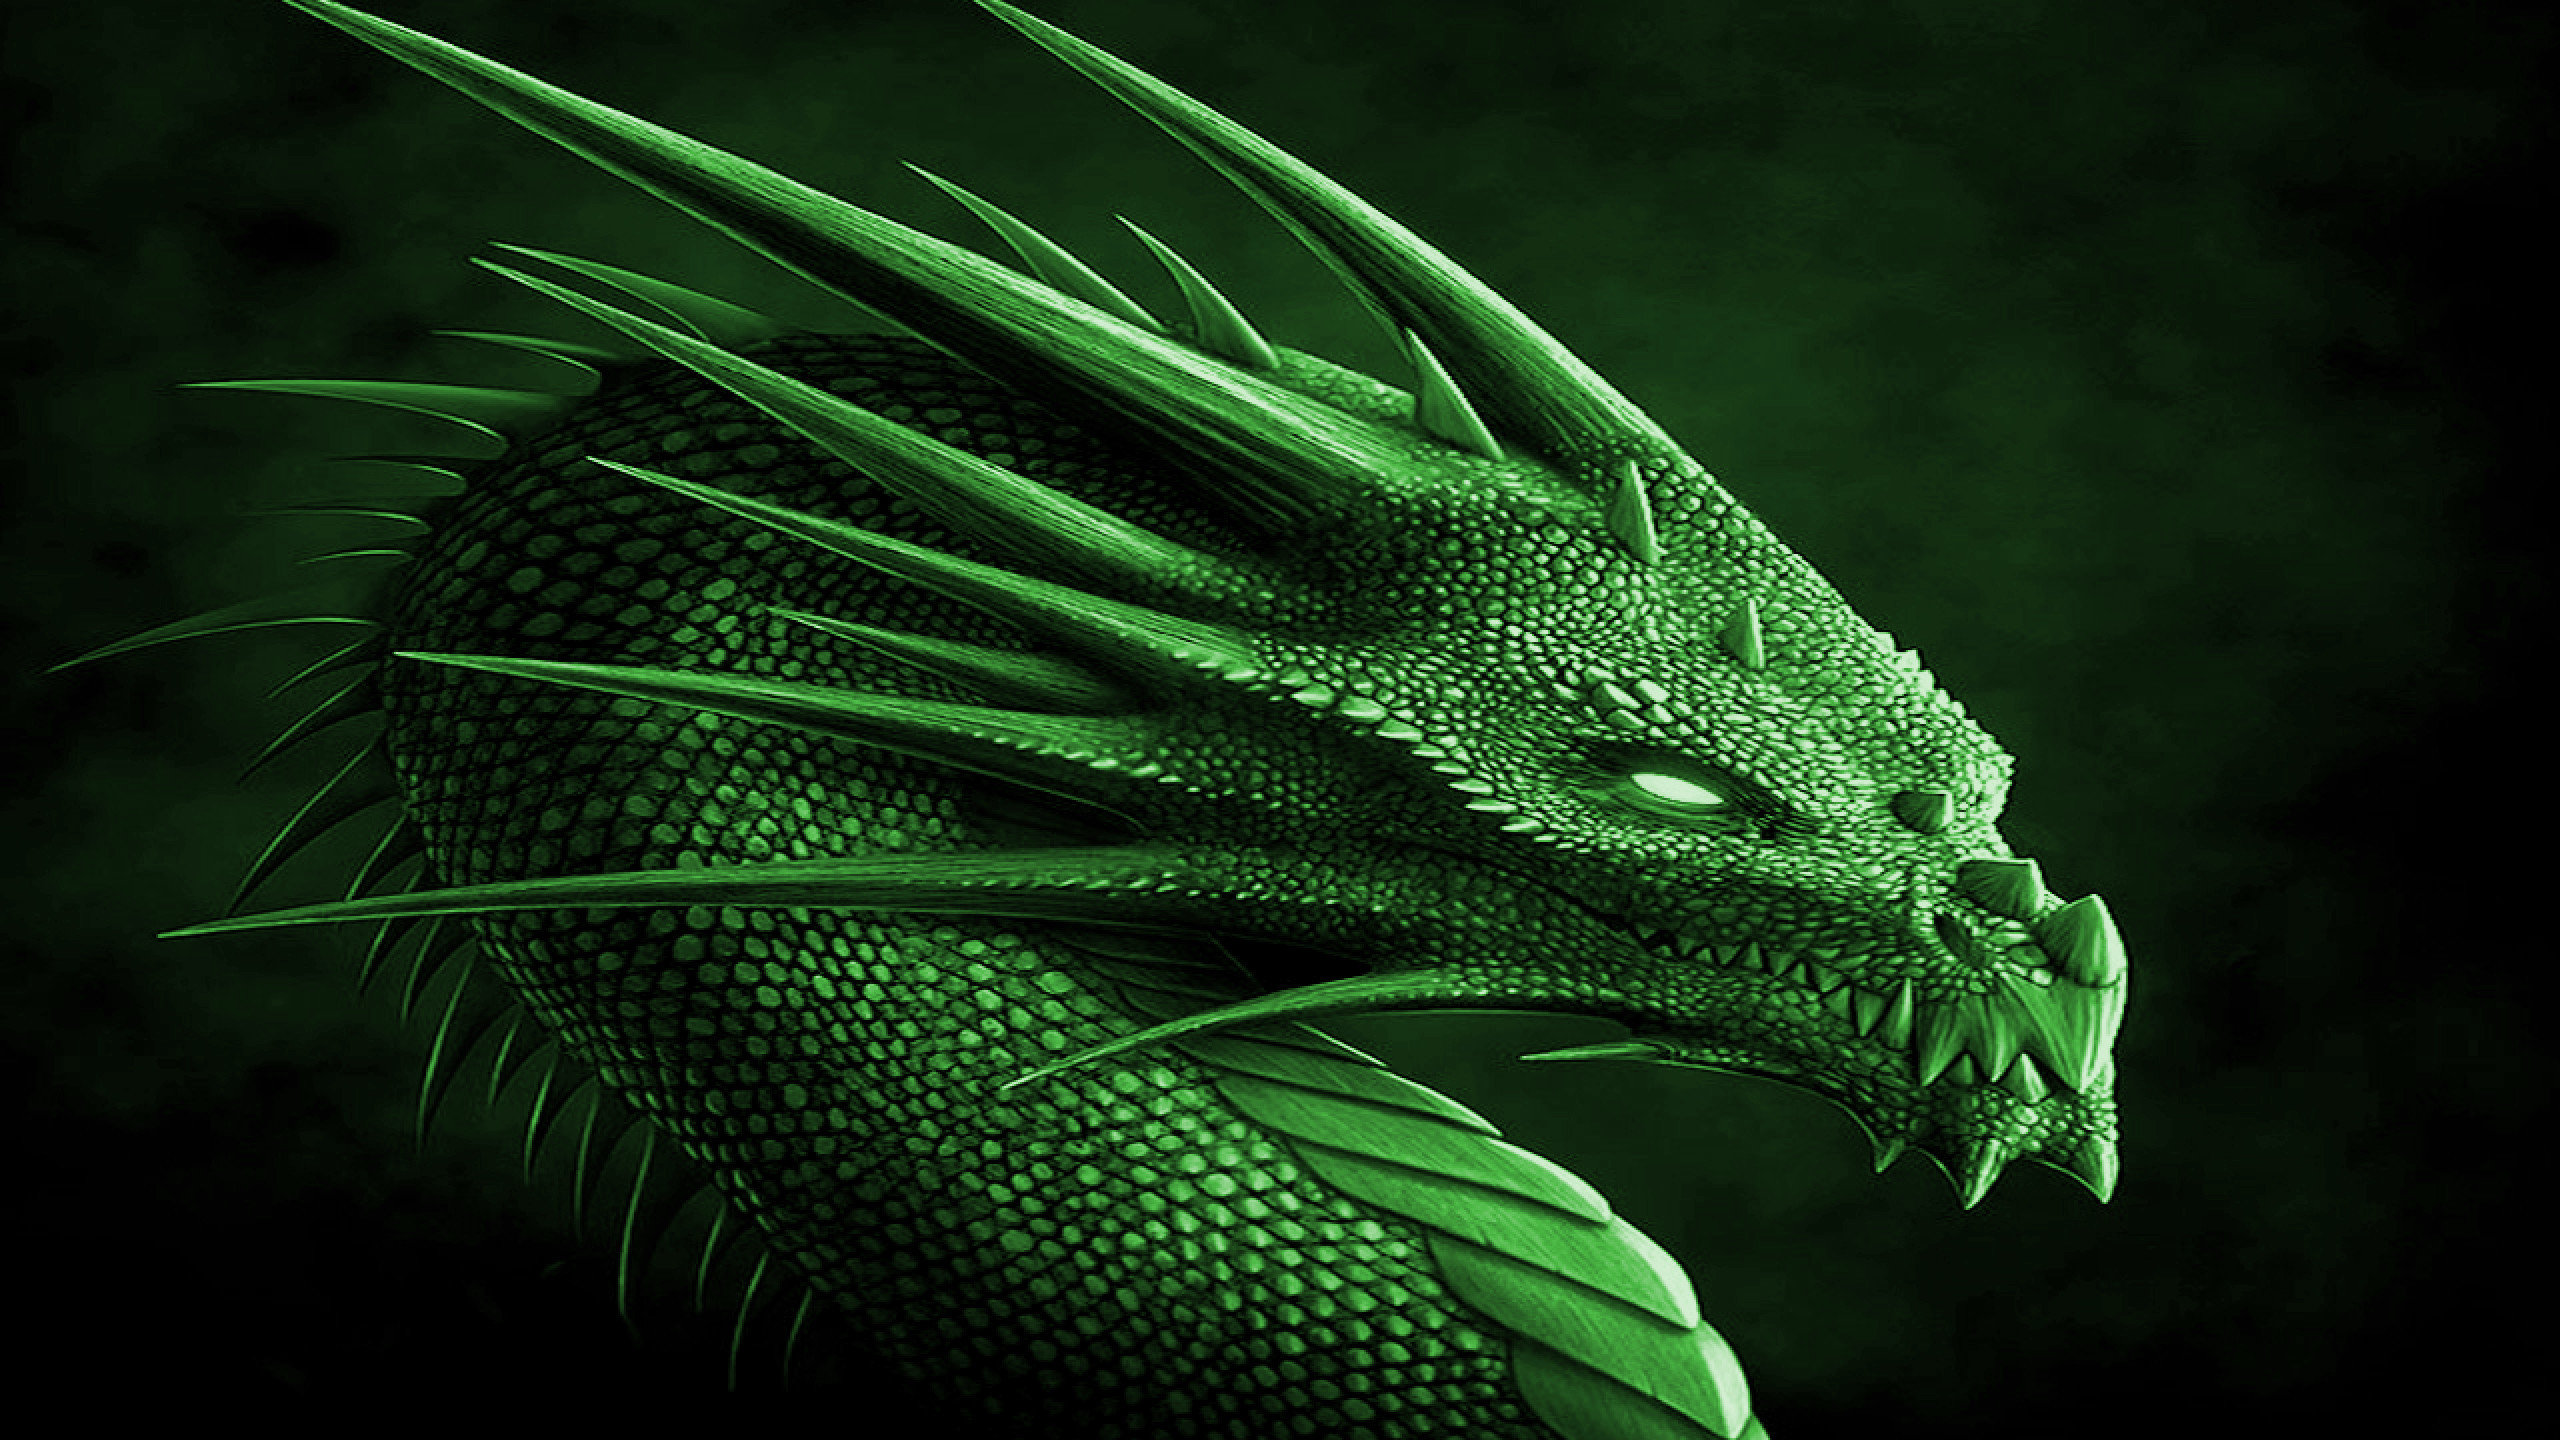 2560x1440 Razer Neon Green Wallpapers